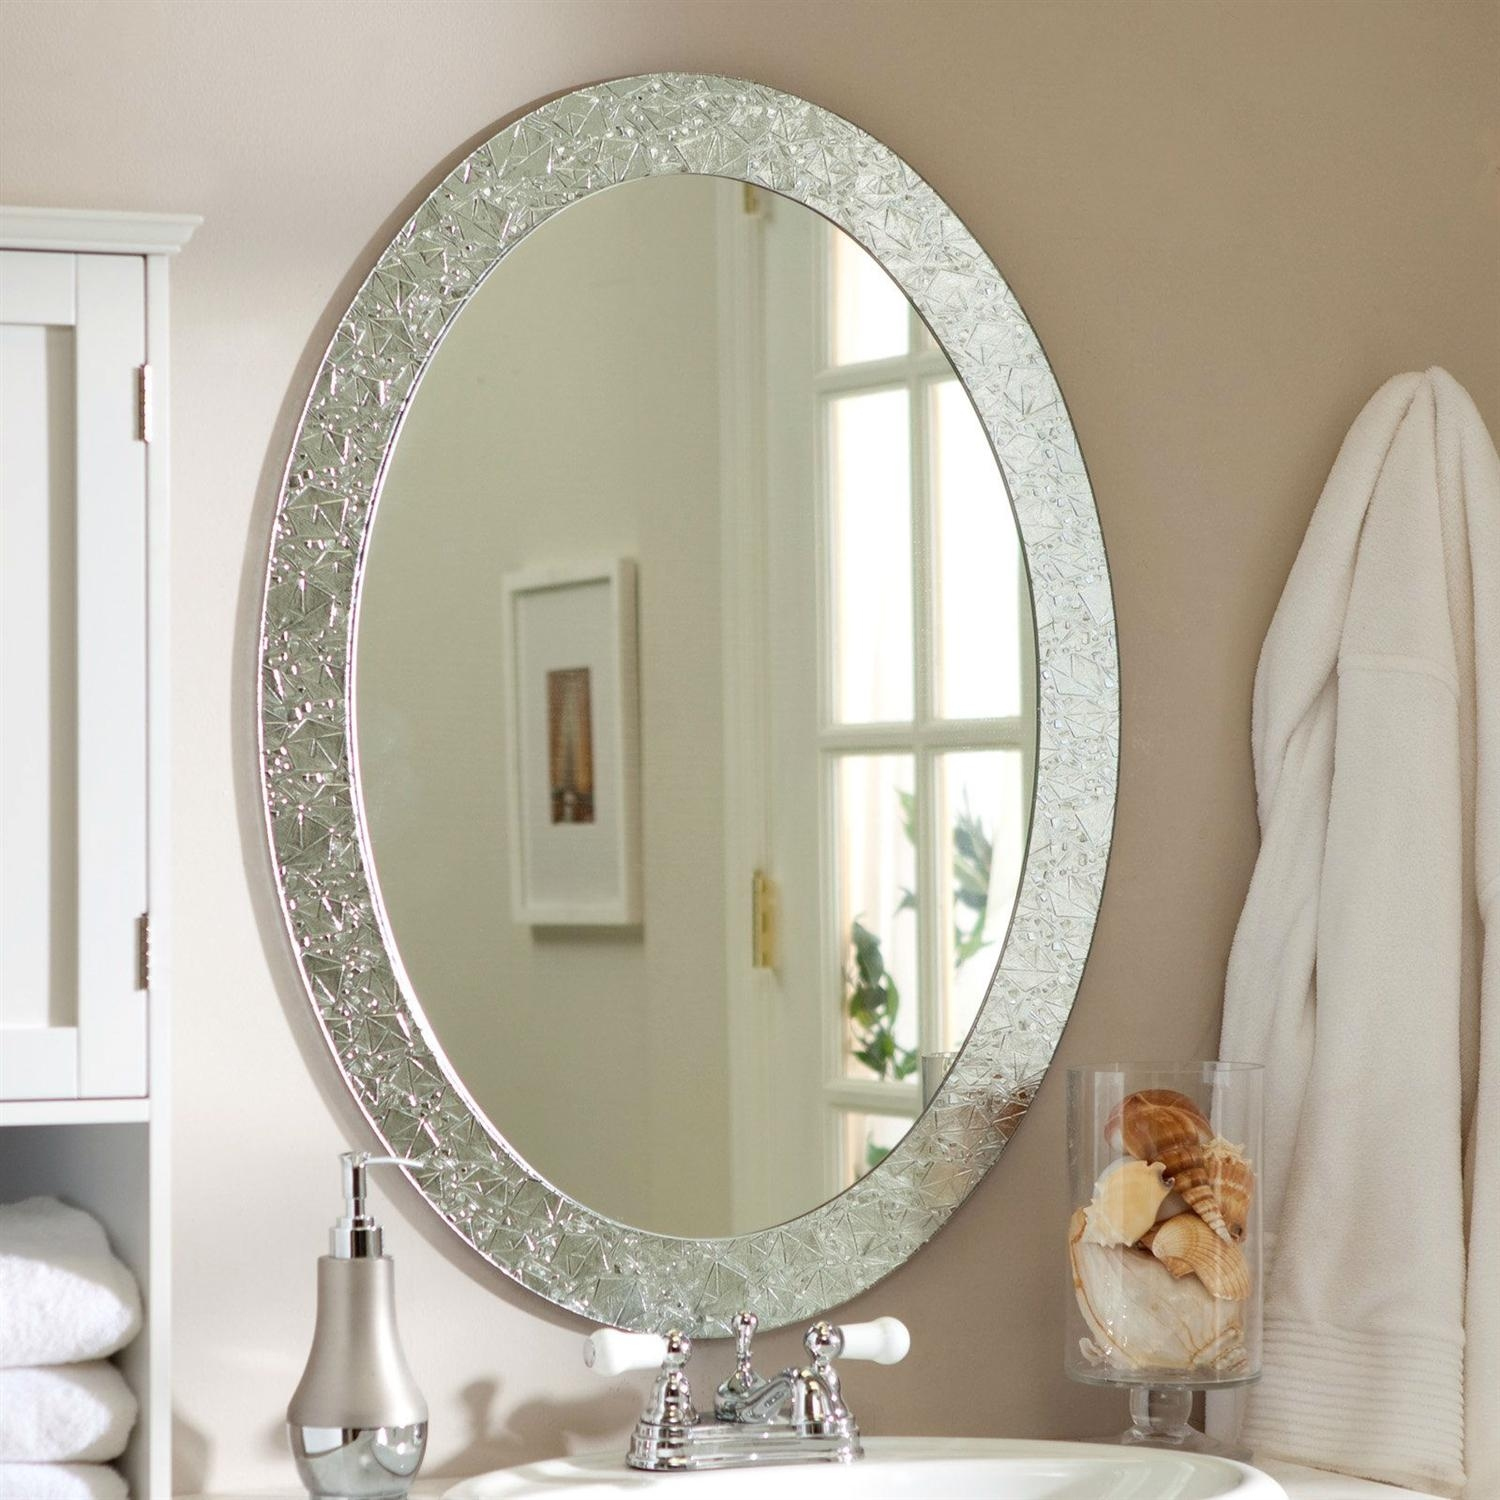 Decorative Round Mirrors For Walls Bathroom Mirror White Frame – 5 For Decorative Round Mirrors (Image 5 of 20)